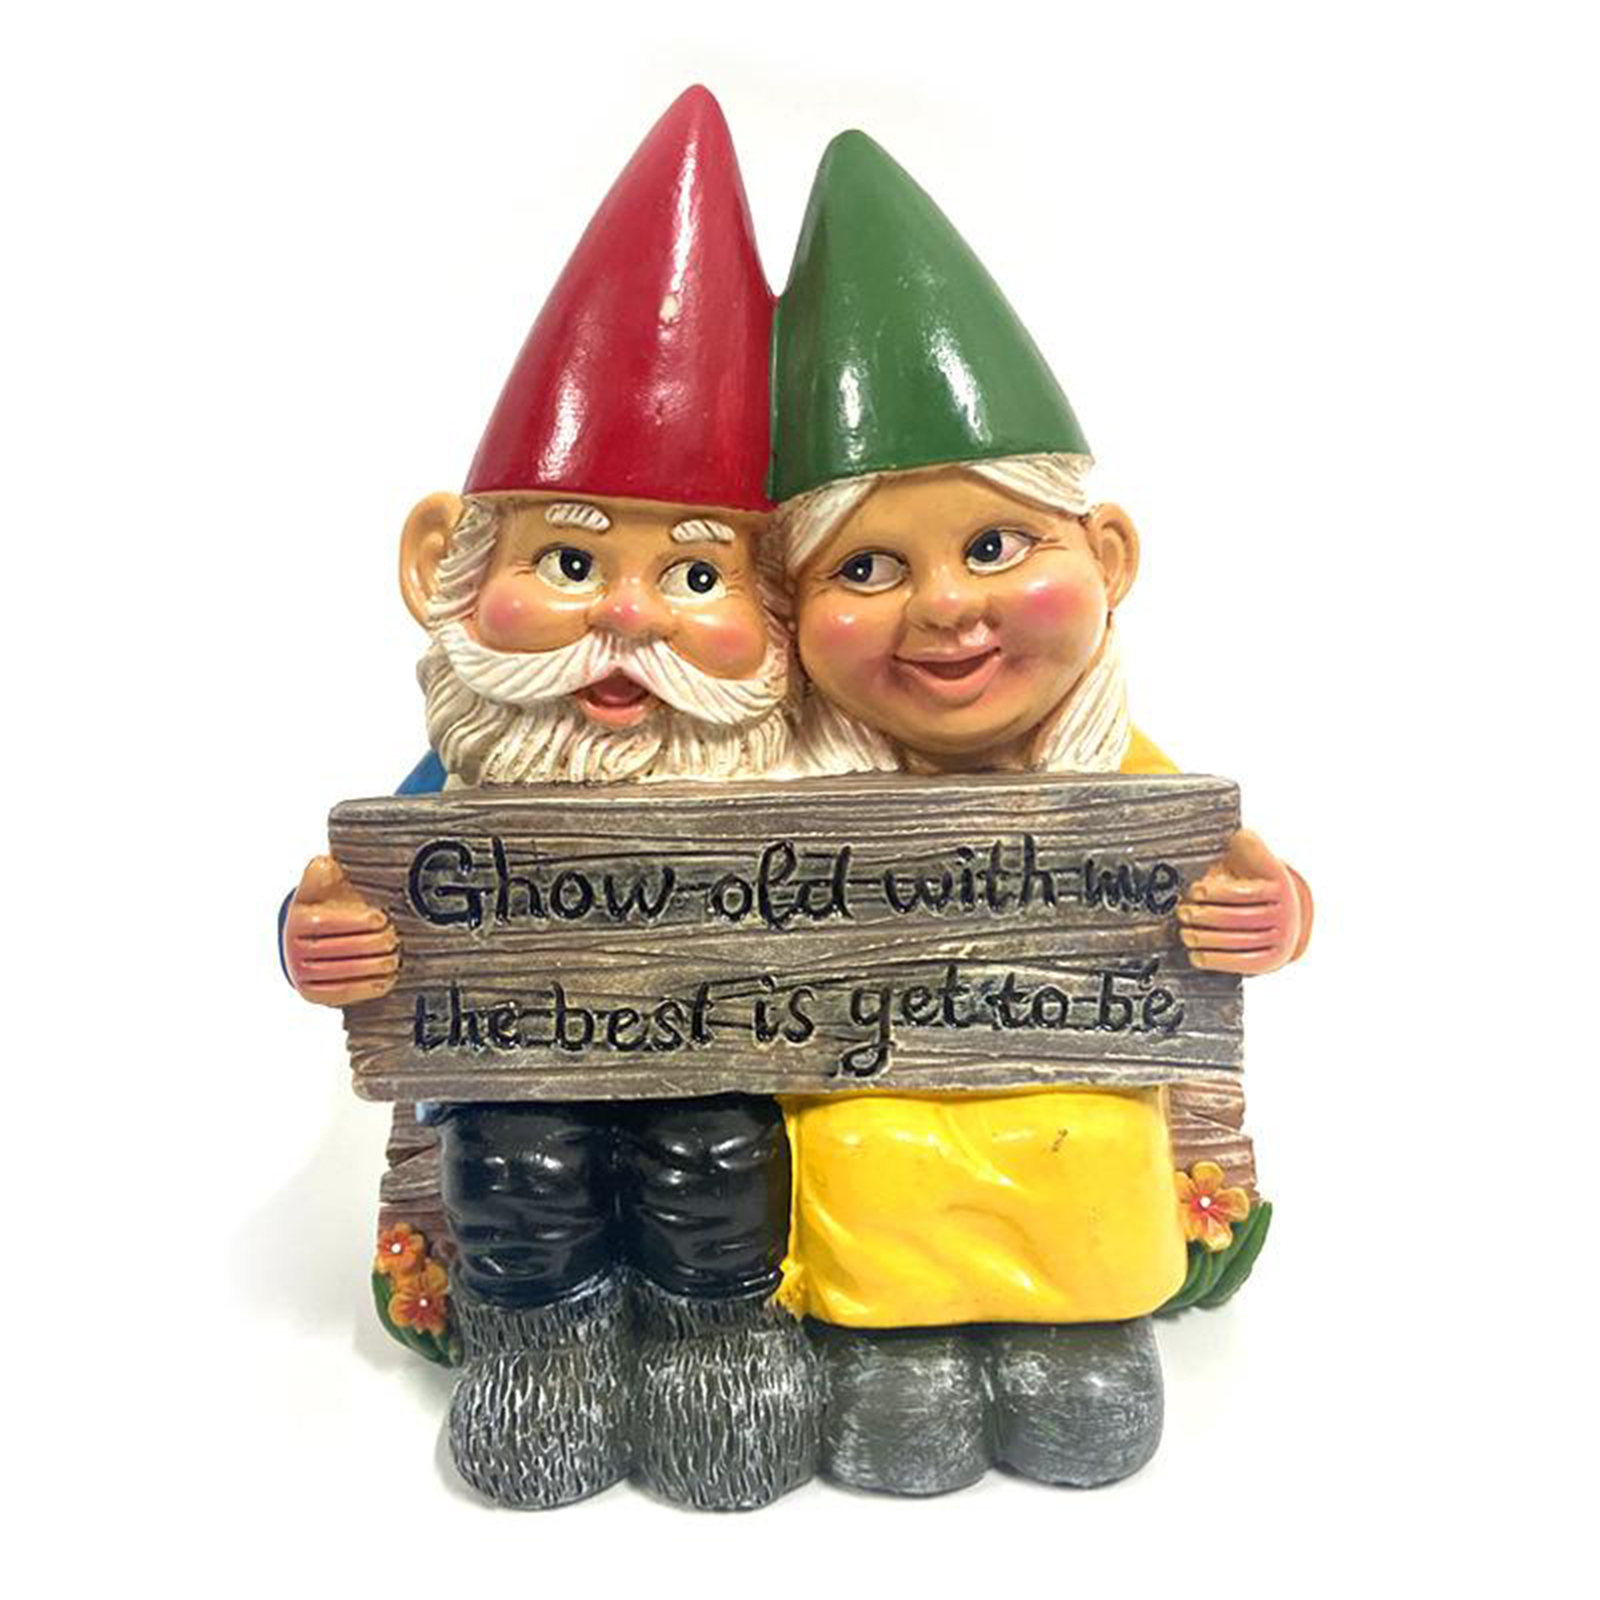 thumbnail 27 - Garden Gnome Statue Small Resin Lawn Gnome Scuplture Funny Indoor Outdoor Decor